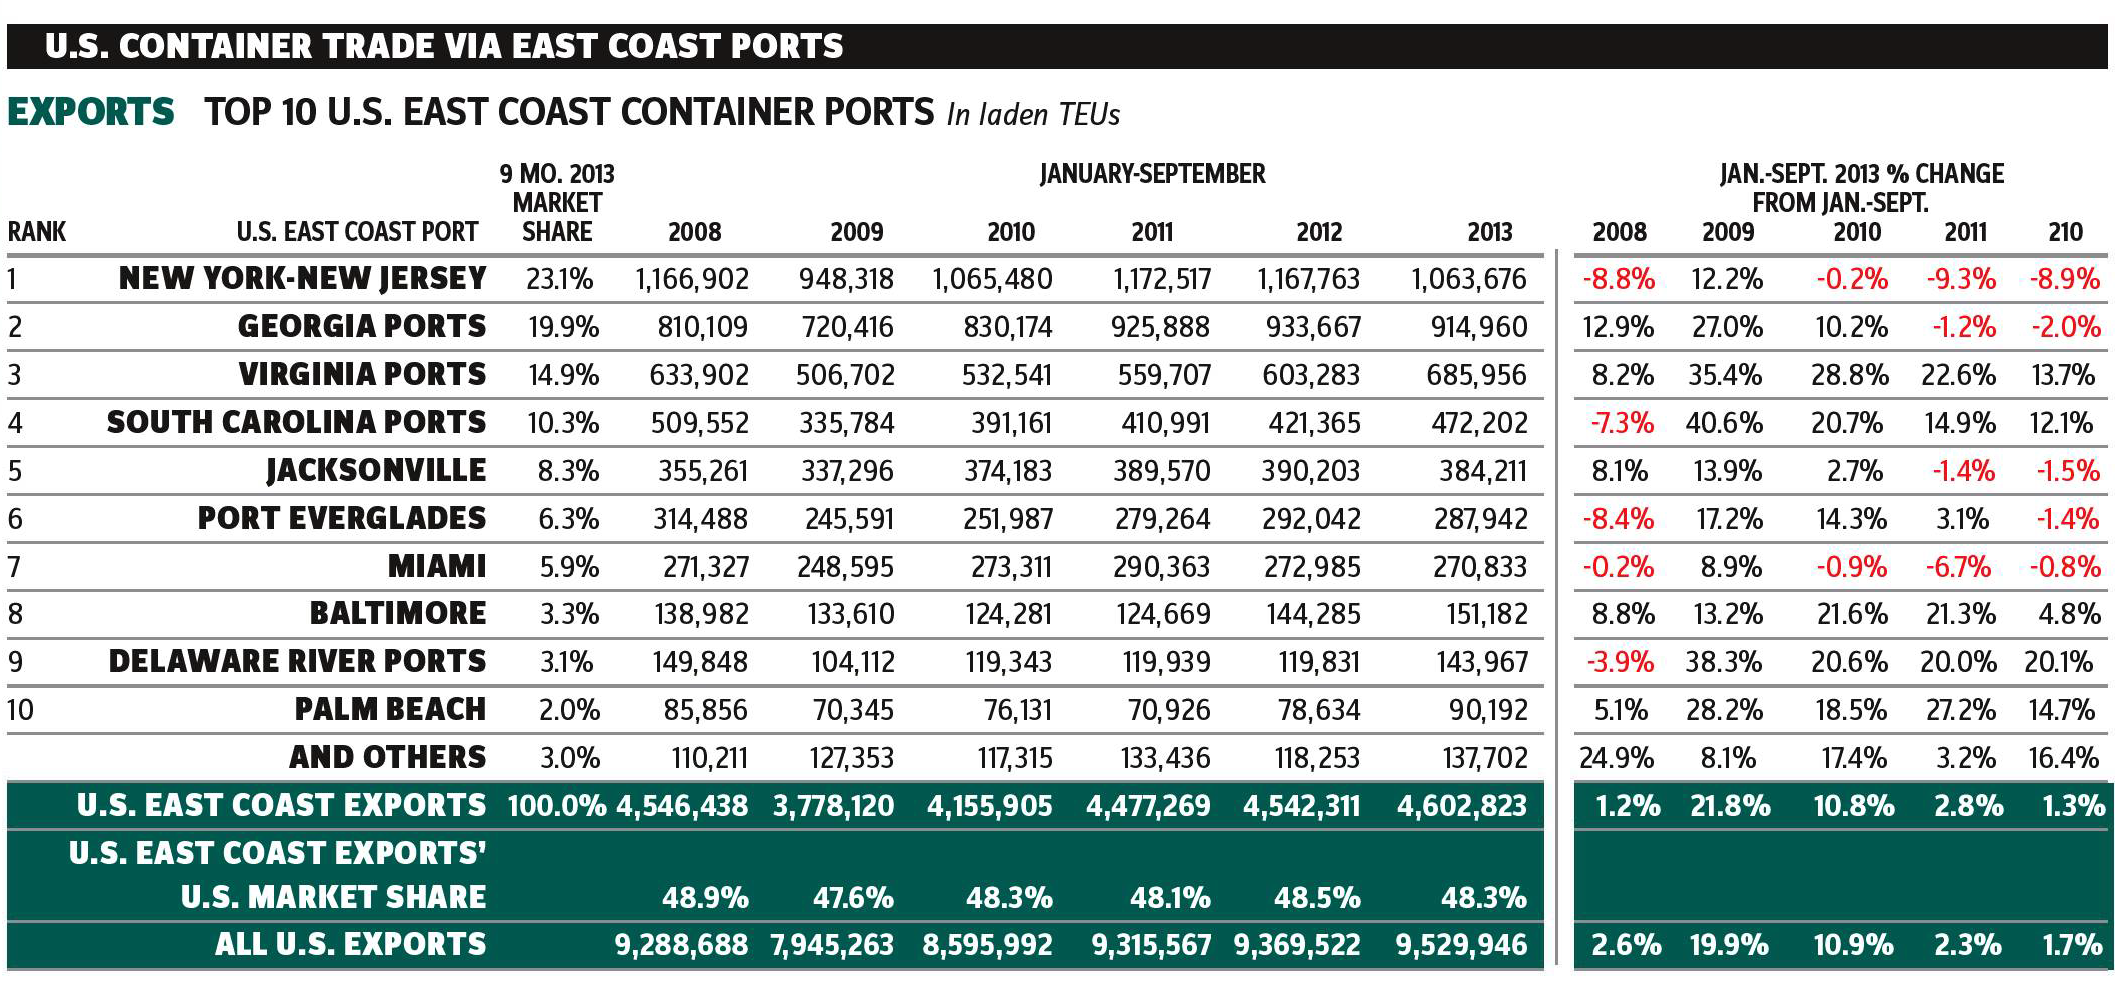 U.S._Container_Trade_Via_East_Coast_Ports-Exports